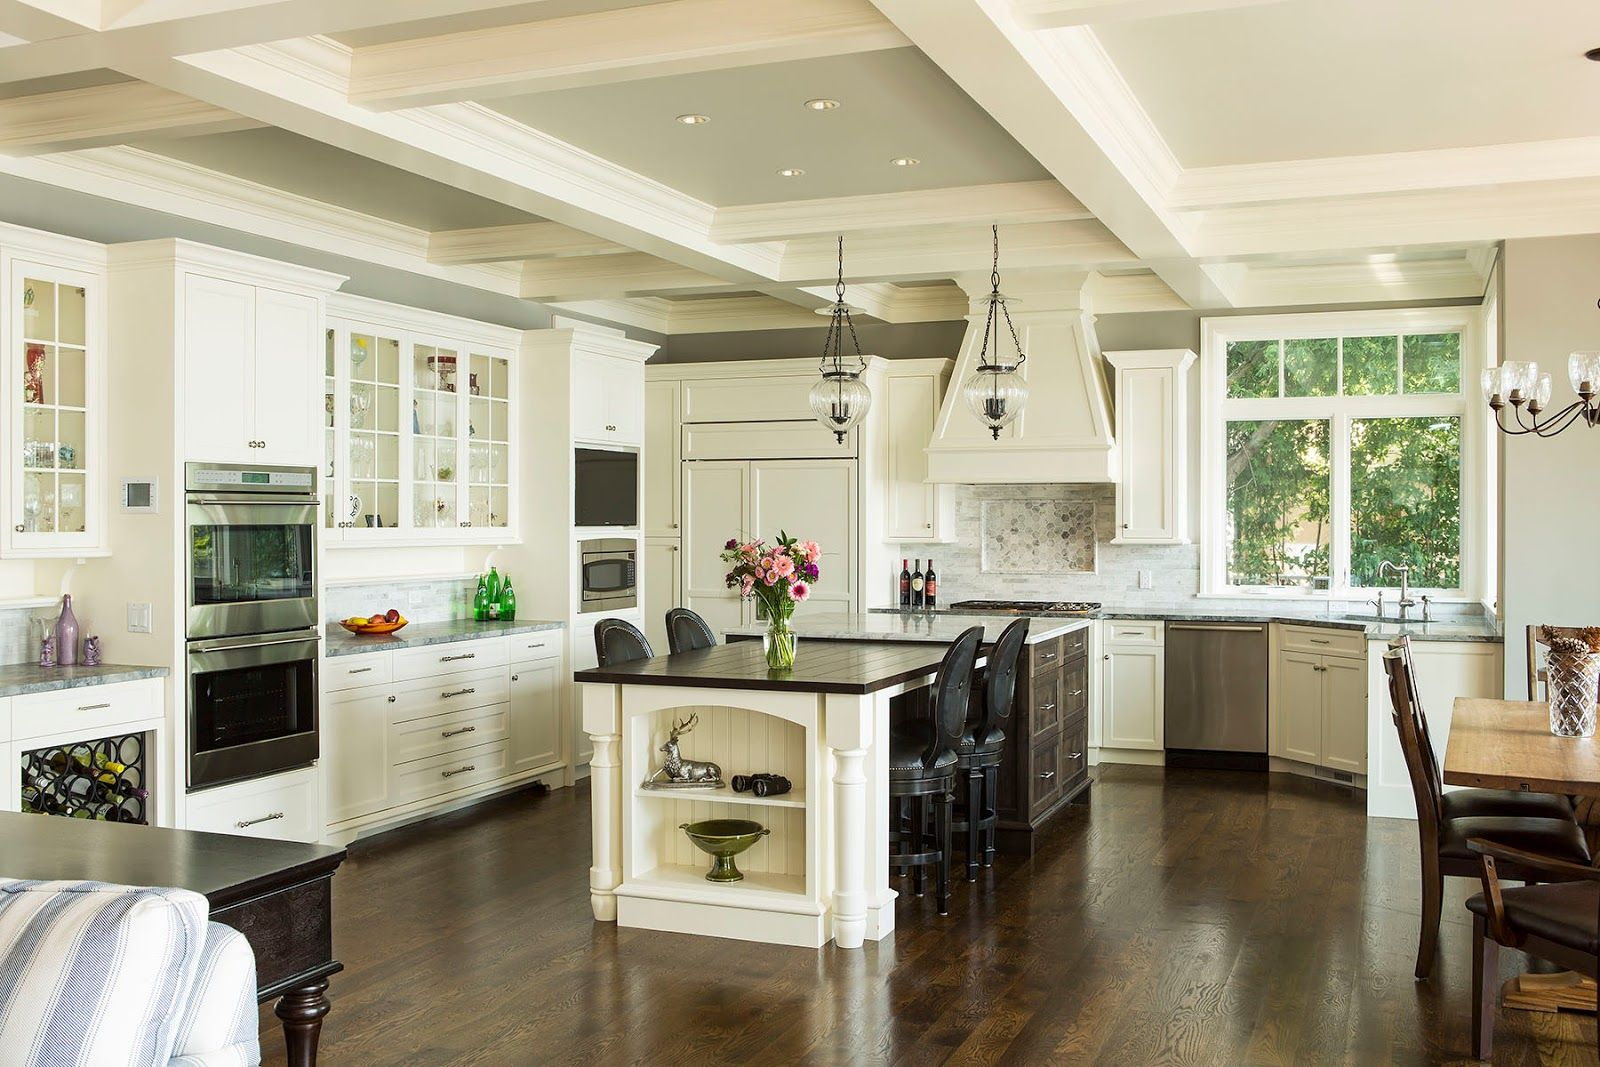 Kitchen Designs With Islands kitchen designs. beautiful large open space kitchen with elegant